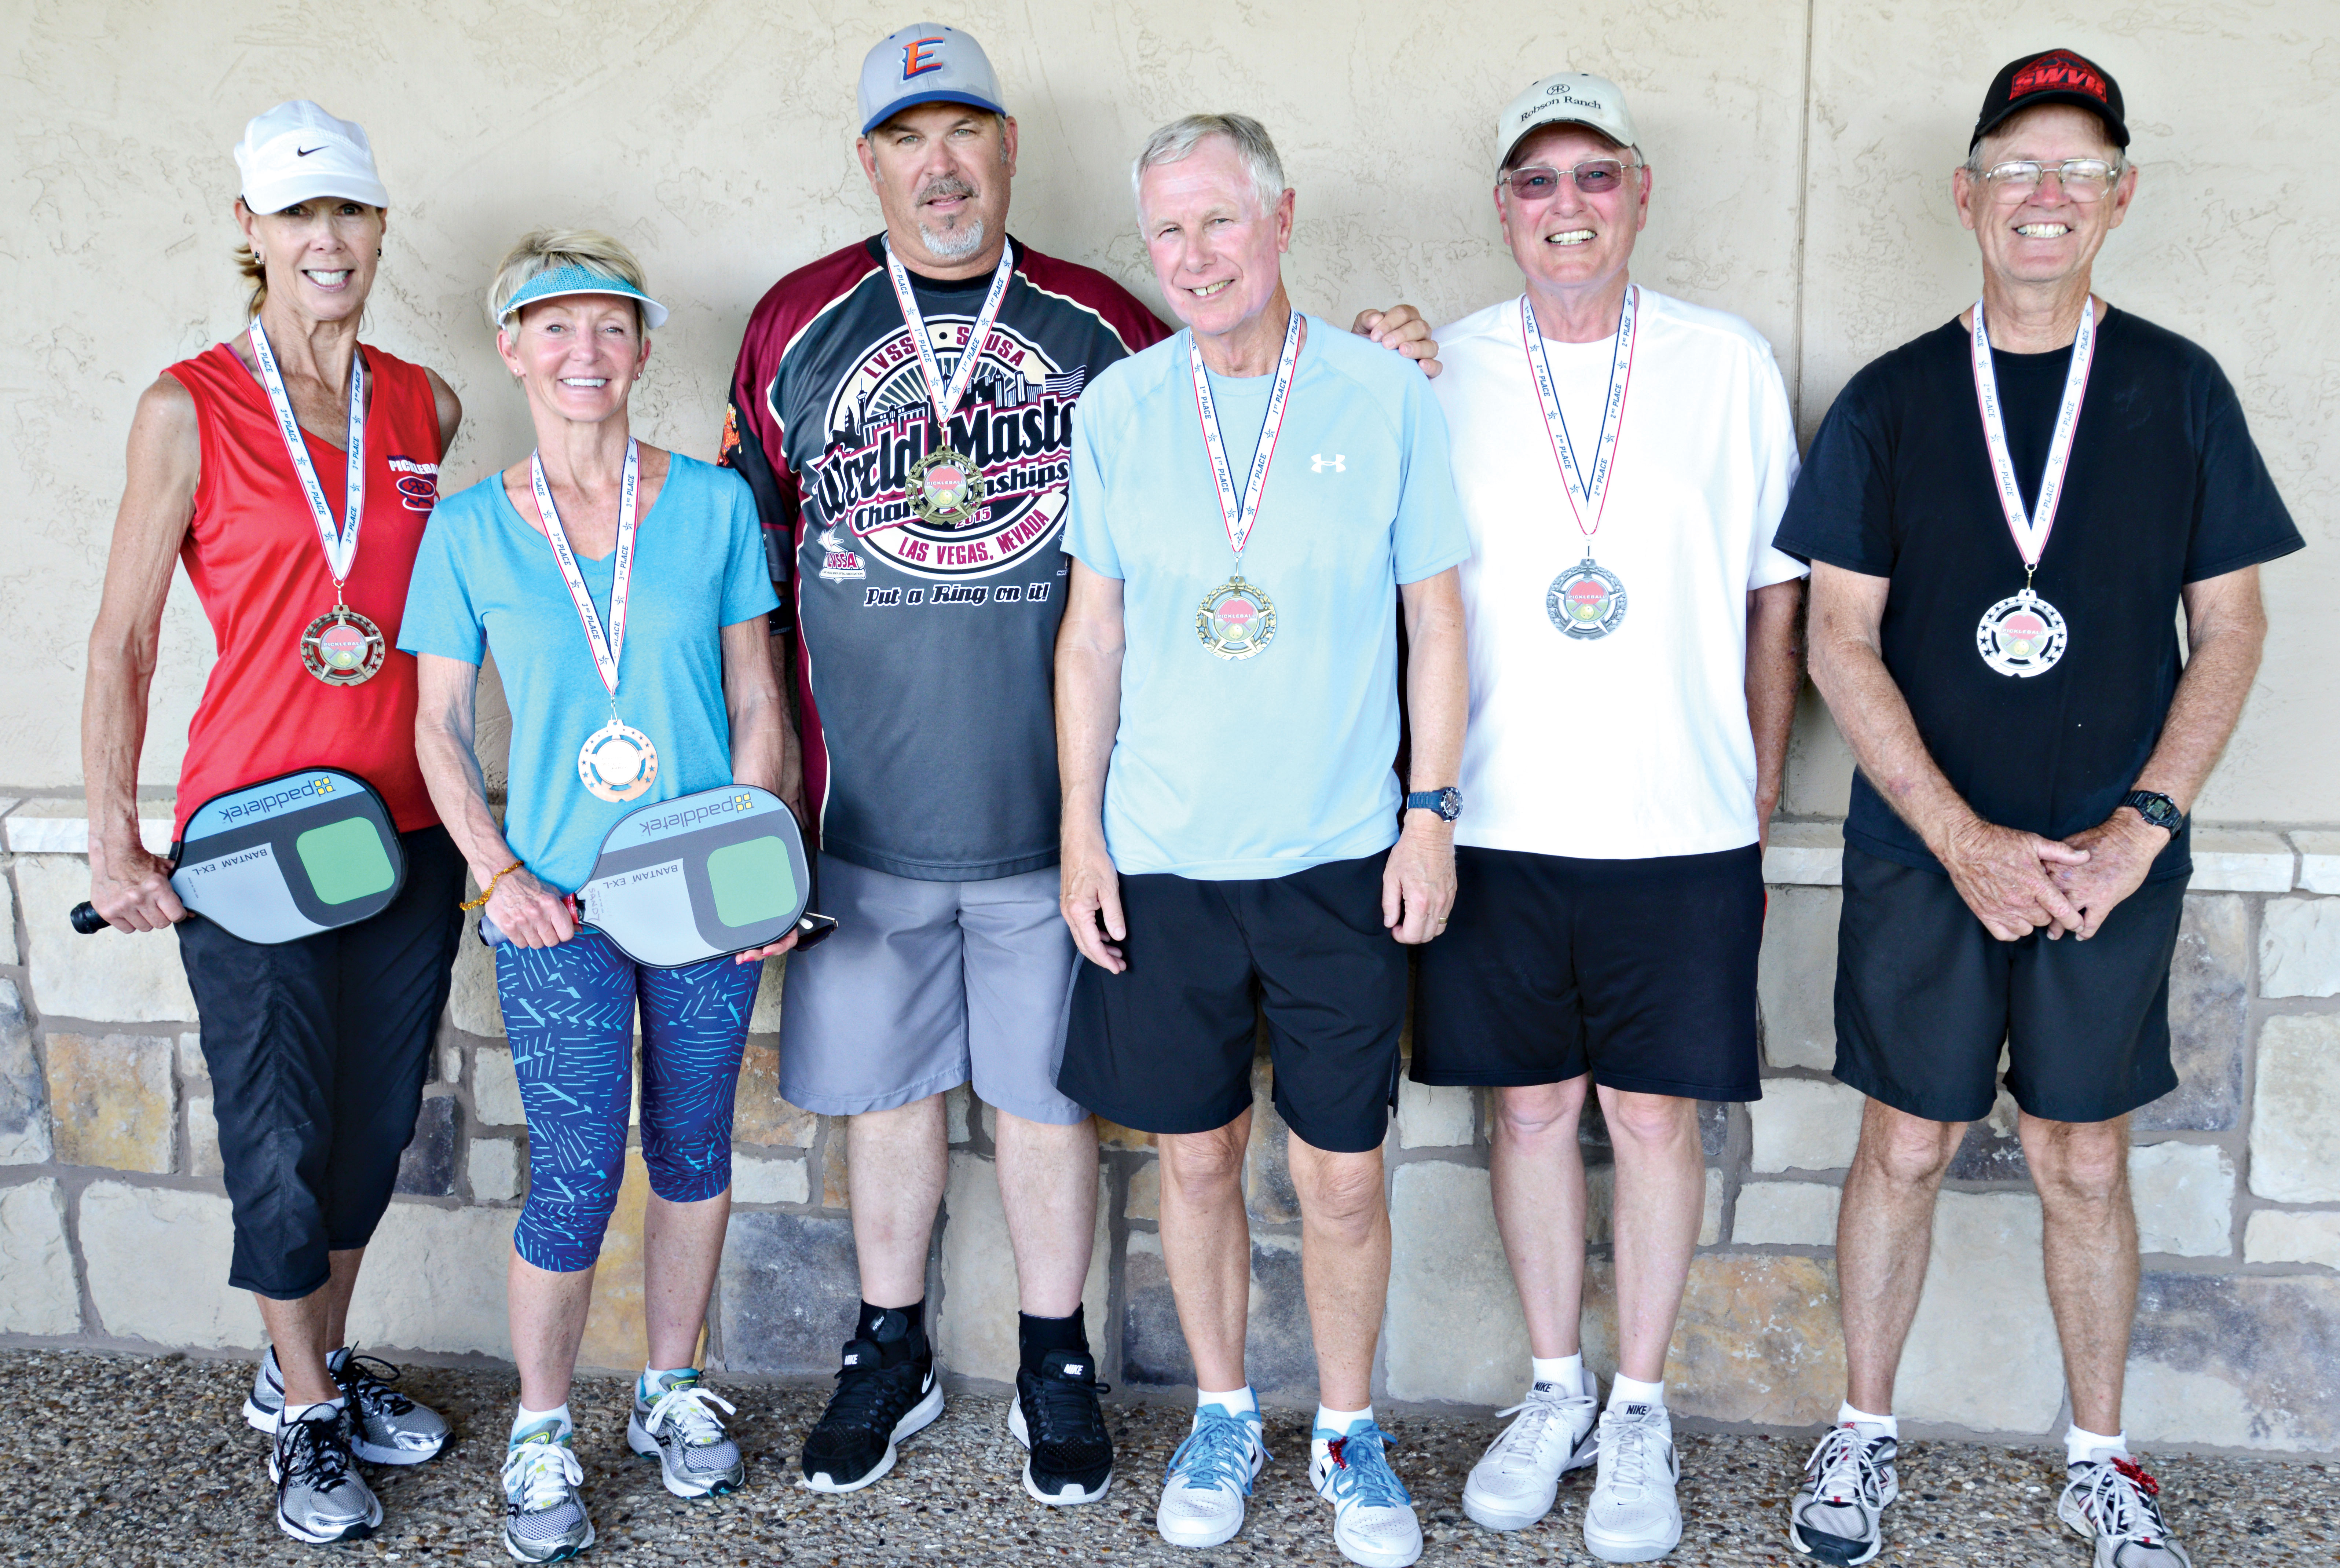 Division B winners, left to right: Janelle Roth, Sandy Welch, Paul Dorwaldt, Peter Waters, Mike Melo and Richard Goodwin